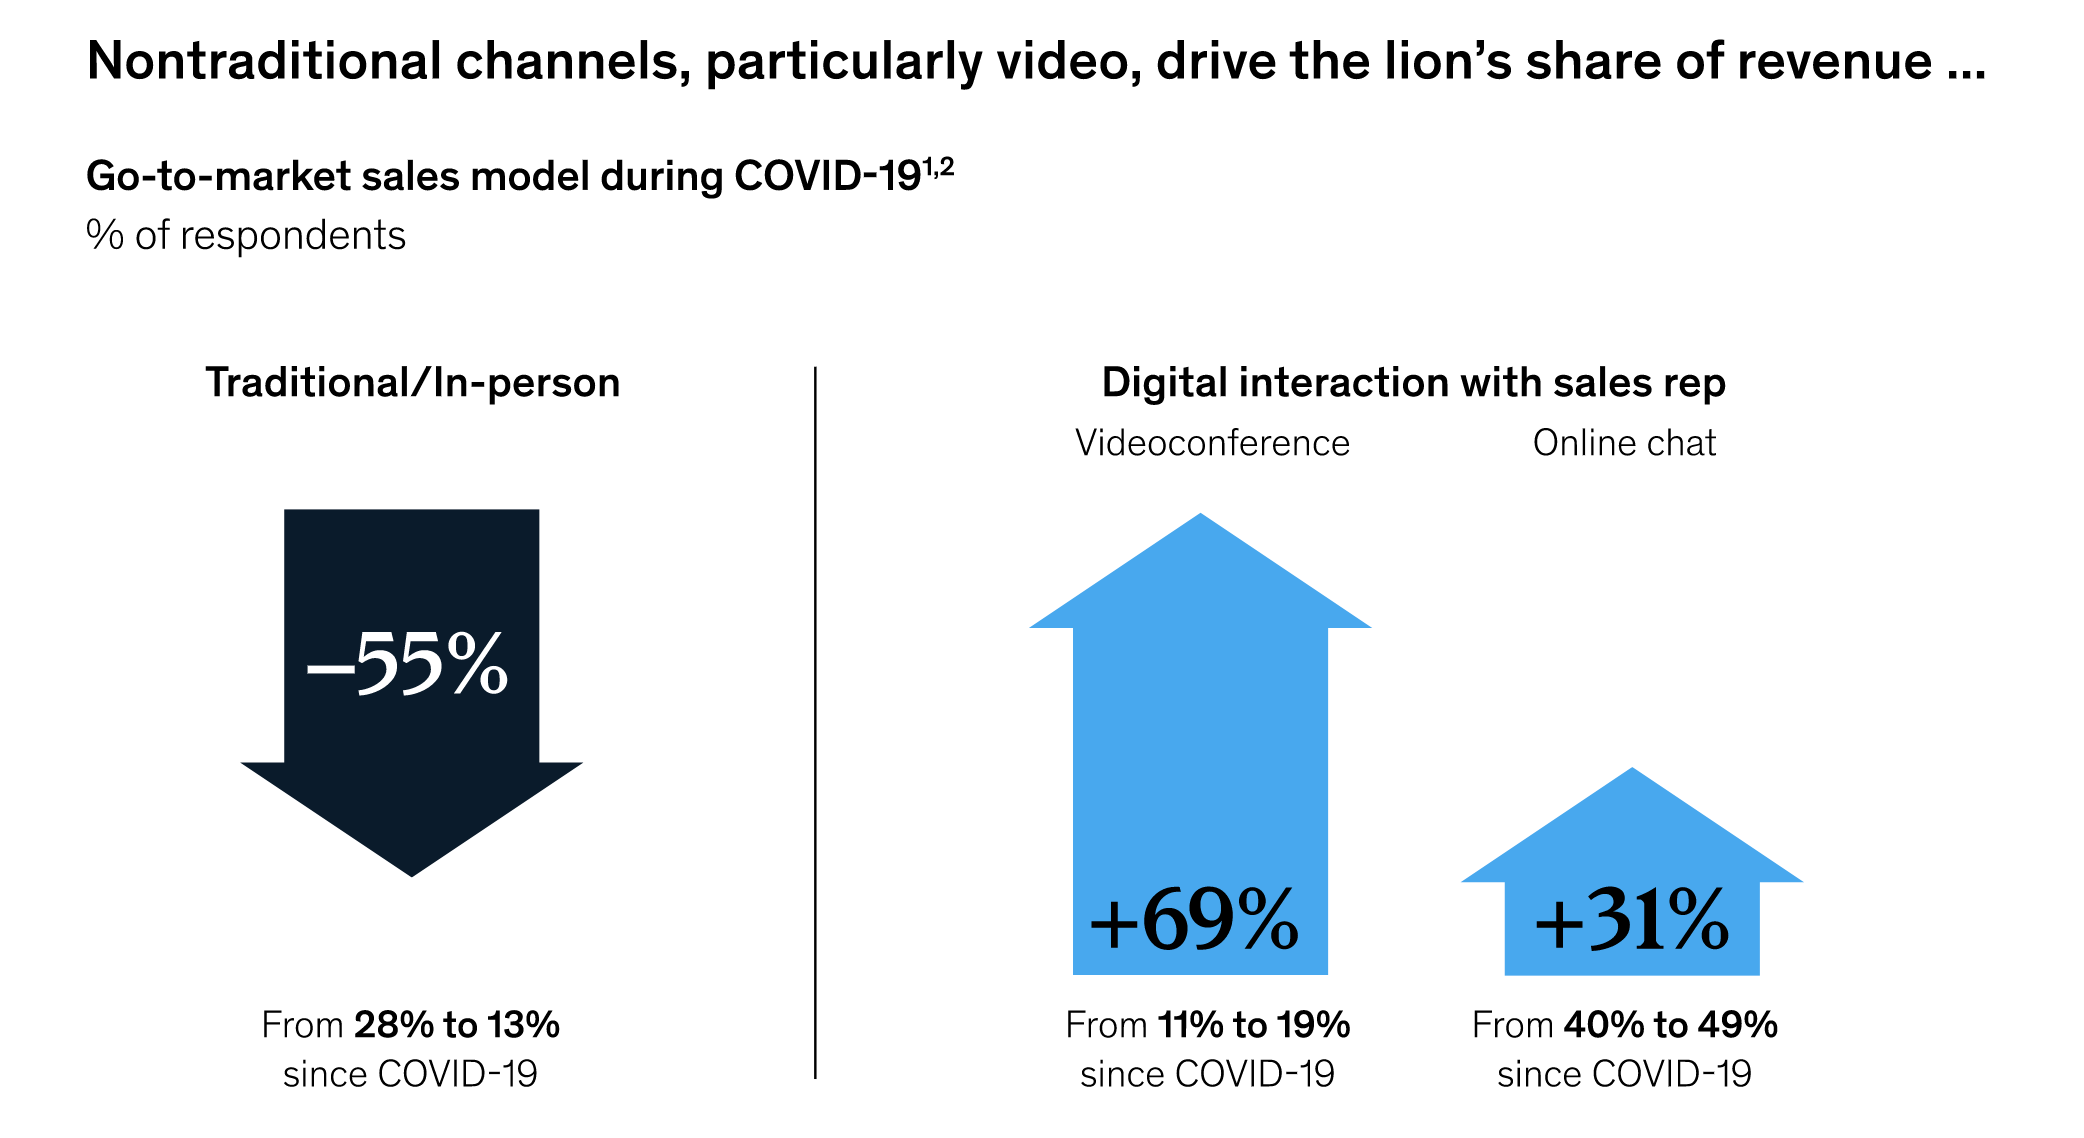 nontraditional vs traditional channels